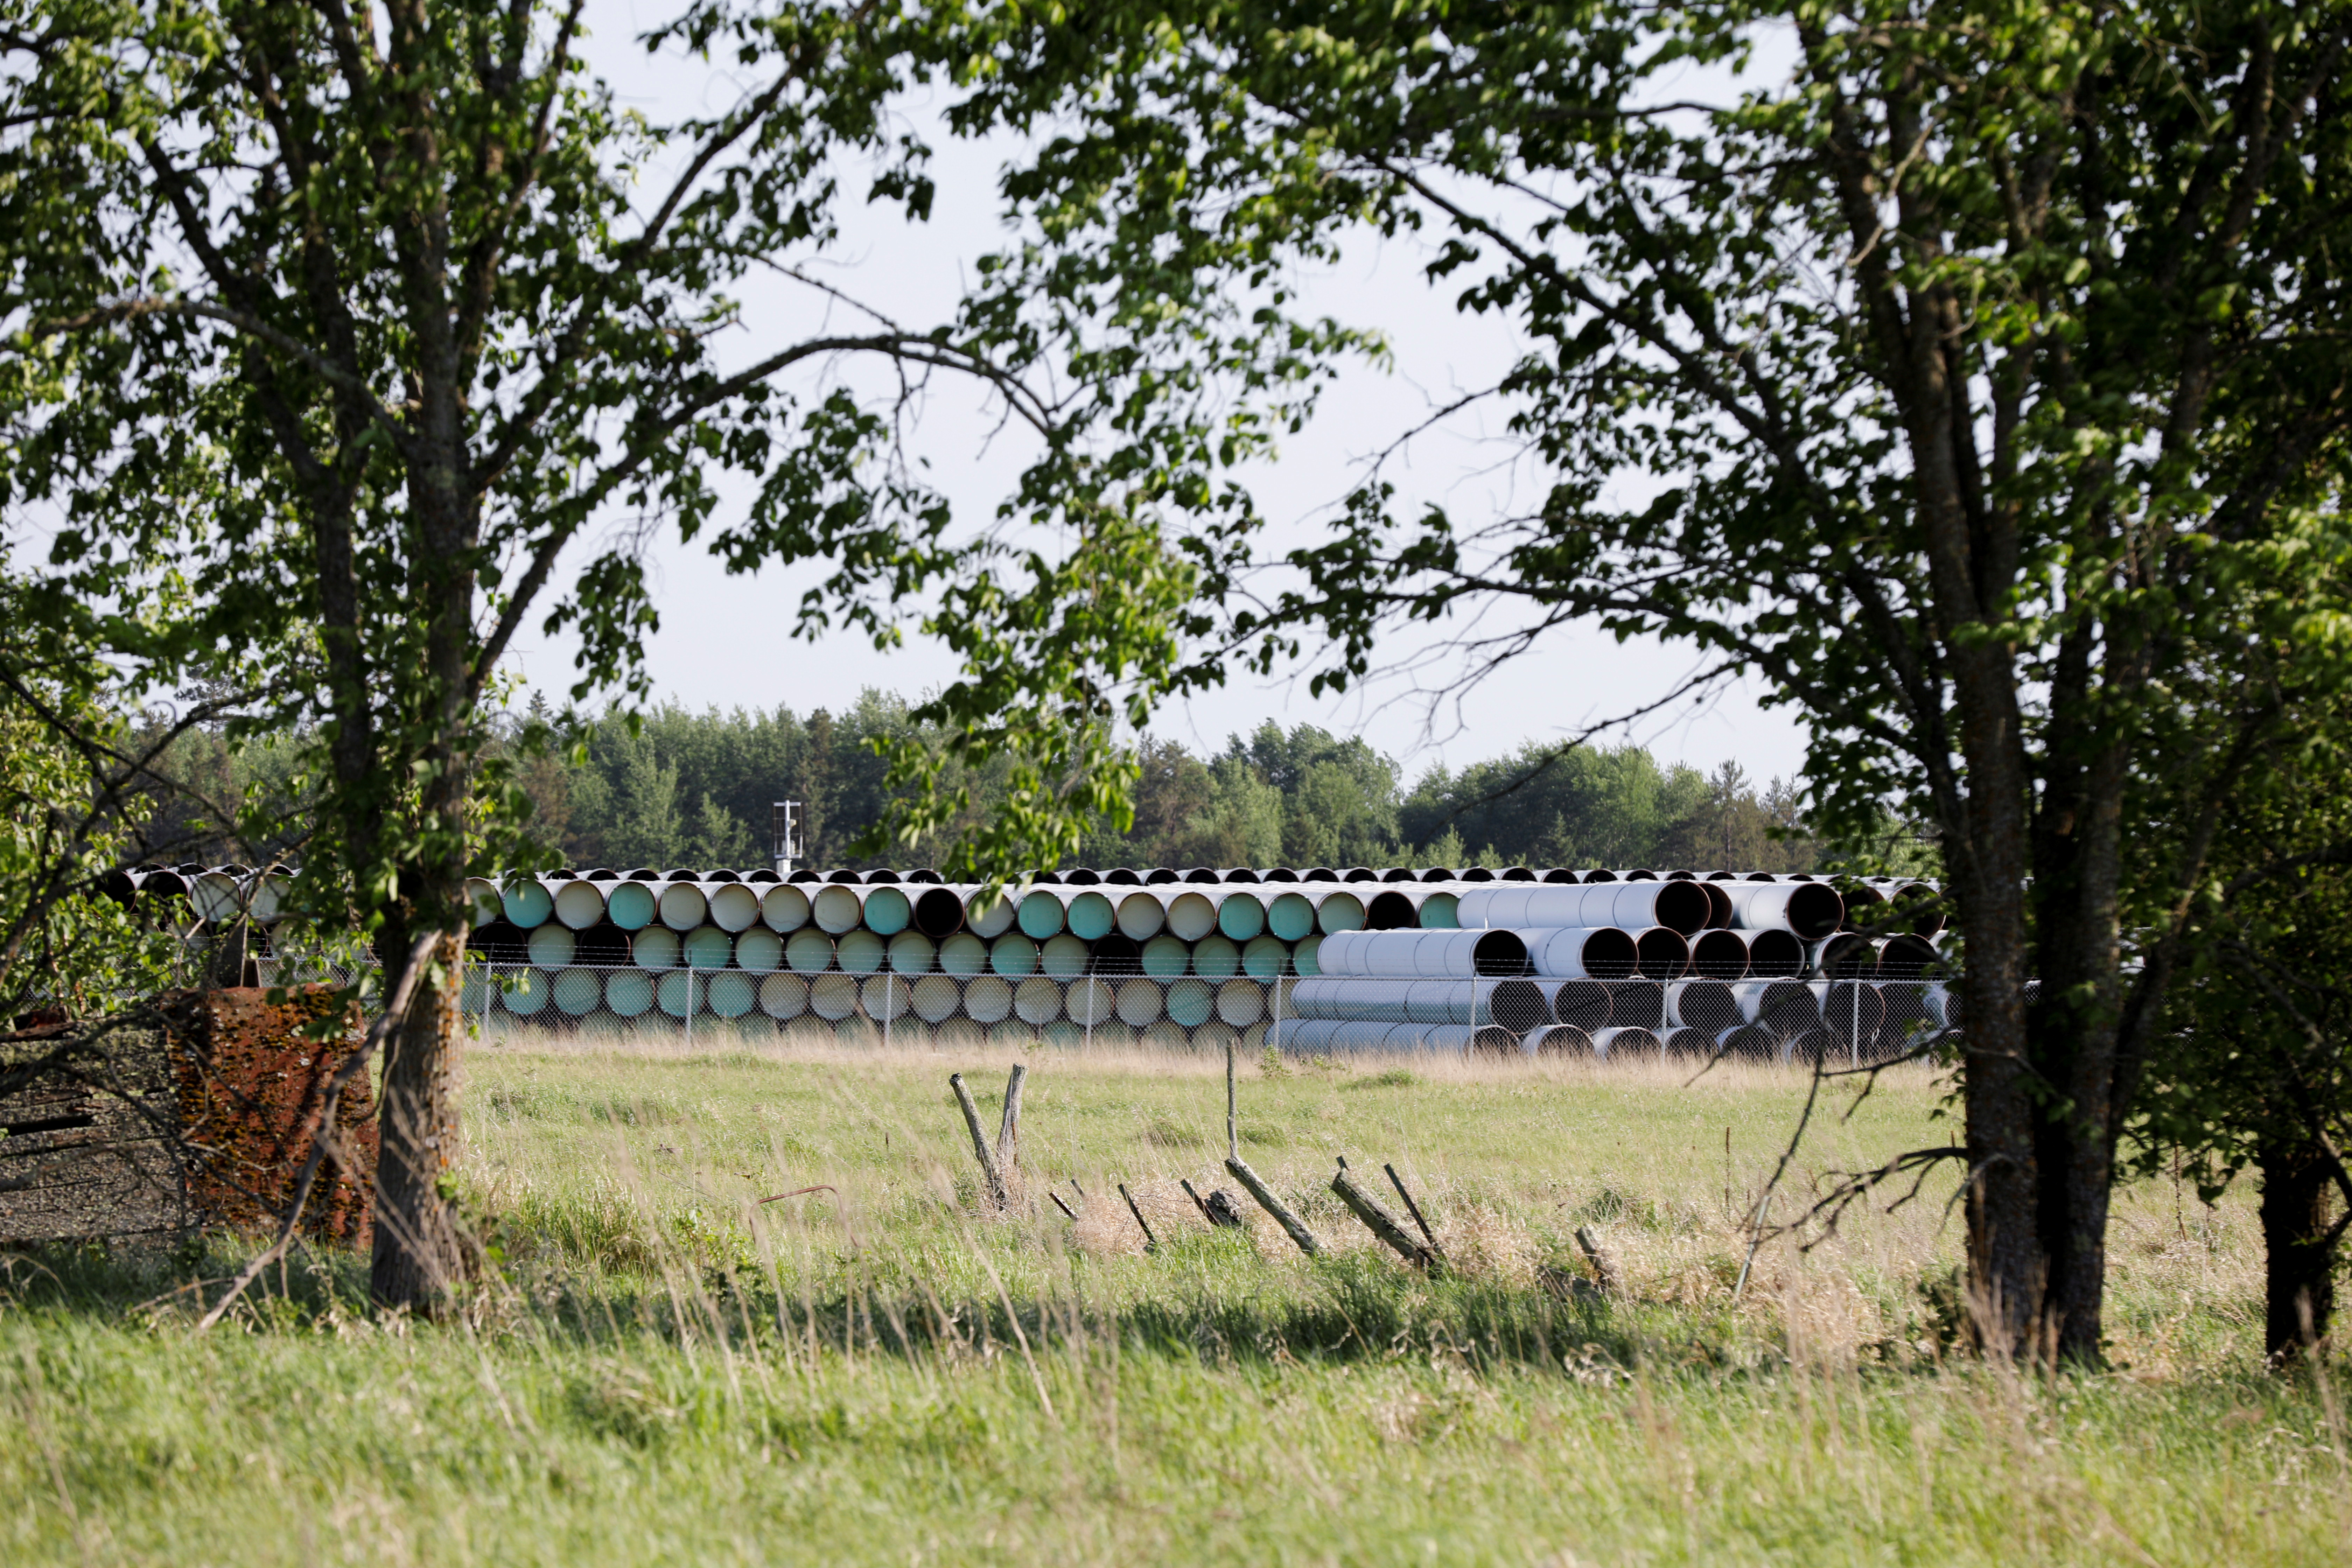 Enbridge Line 3 pipes are stored near Park Rapids on the second day of the Treaty People Gathering, an organized protest of the Line 3 pipeline, built by Enbridge Energy, in Park Rapids, Minnesota, U.S., June 6, 2021.  REUTERS/Nicholas Pfosi